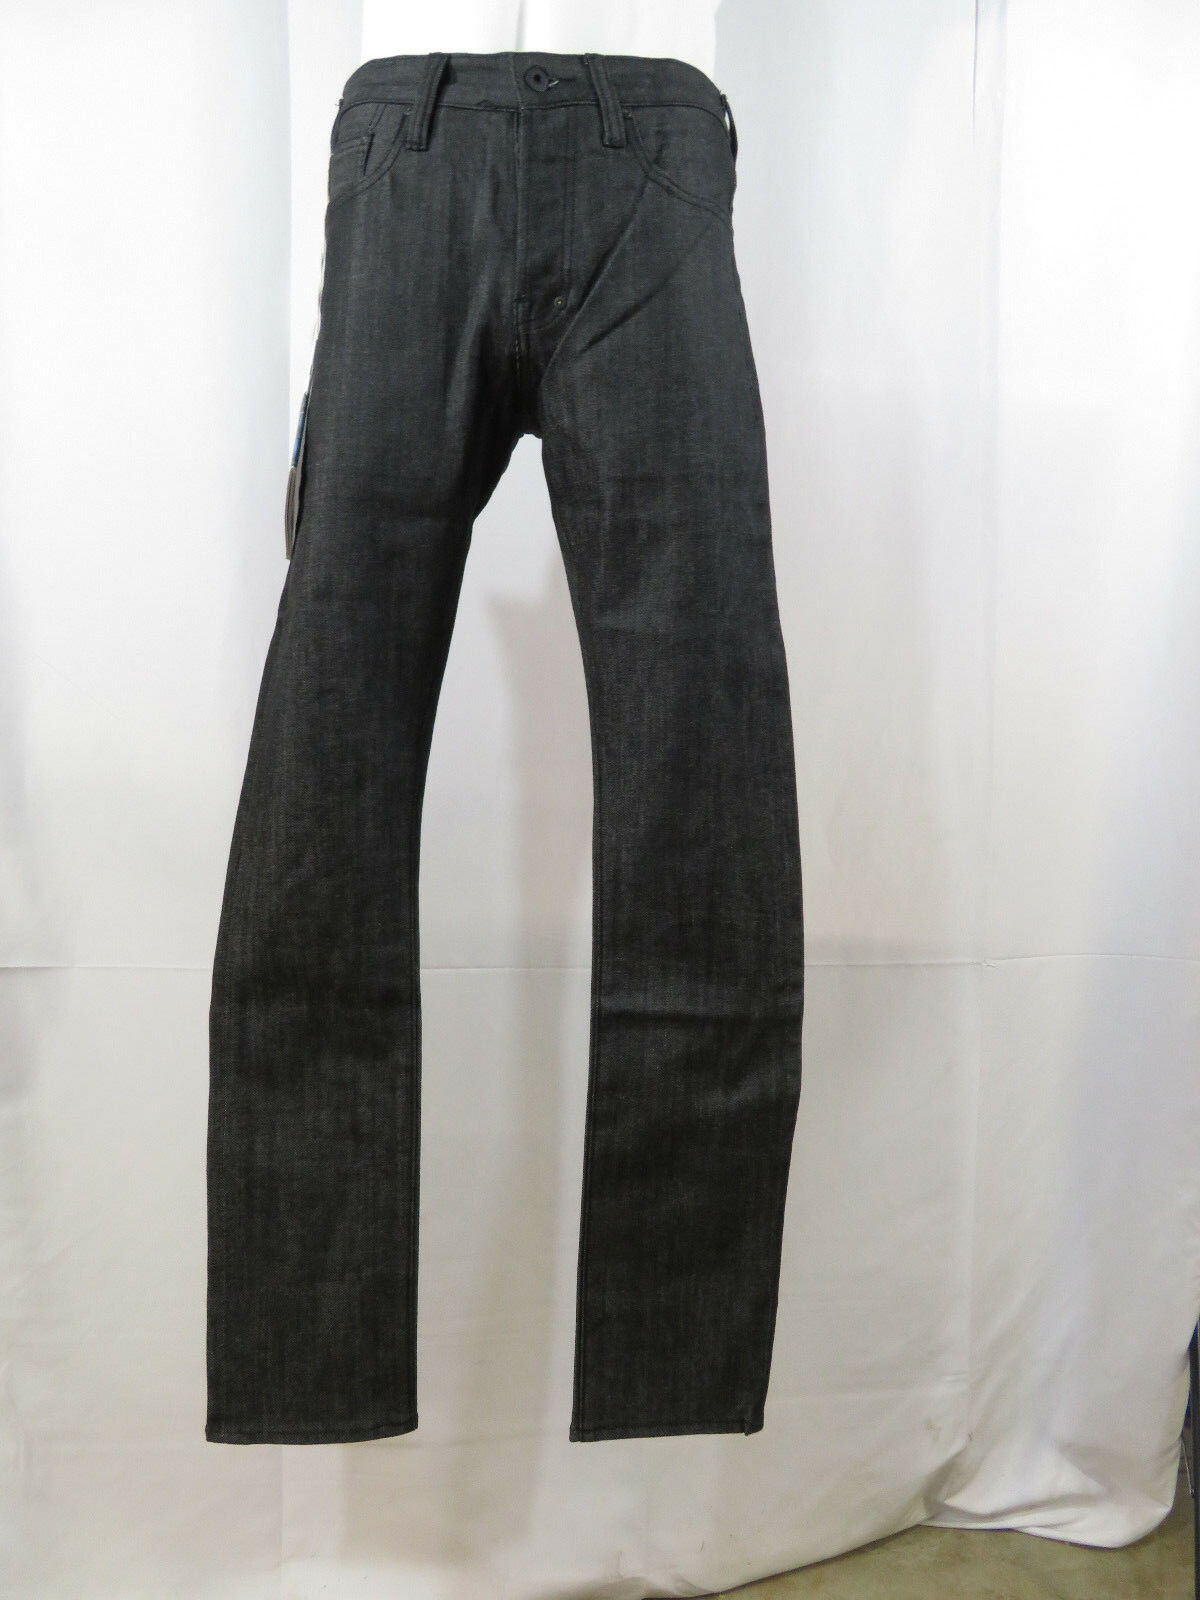 New with Tags  Prps Windsor Tapered Stretch Skinny Raw Jeans Size 30